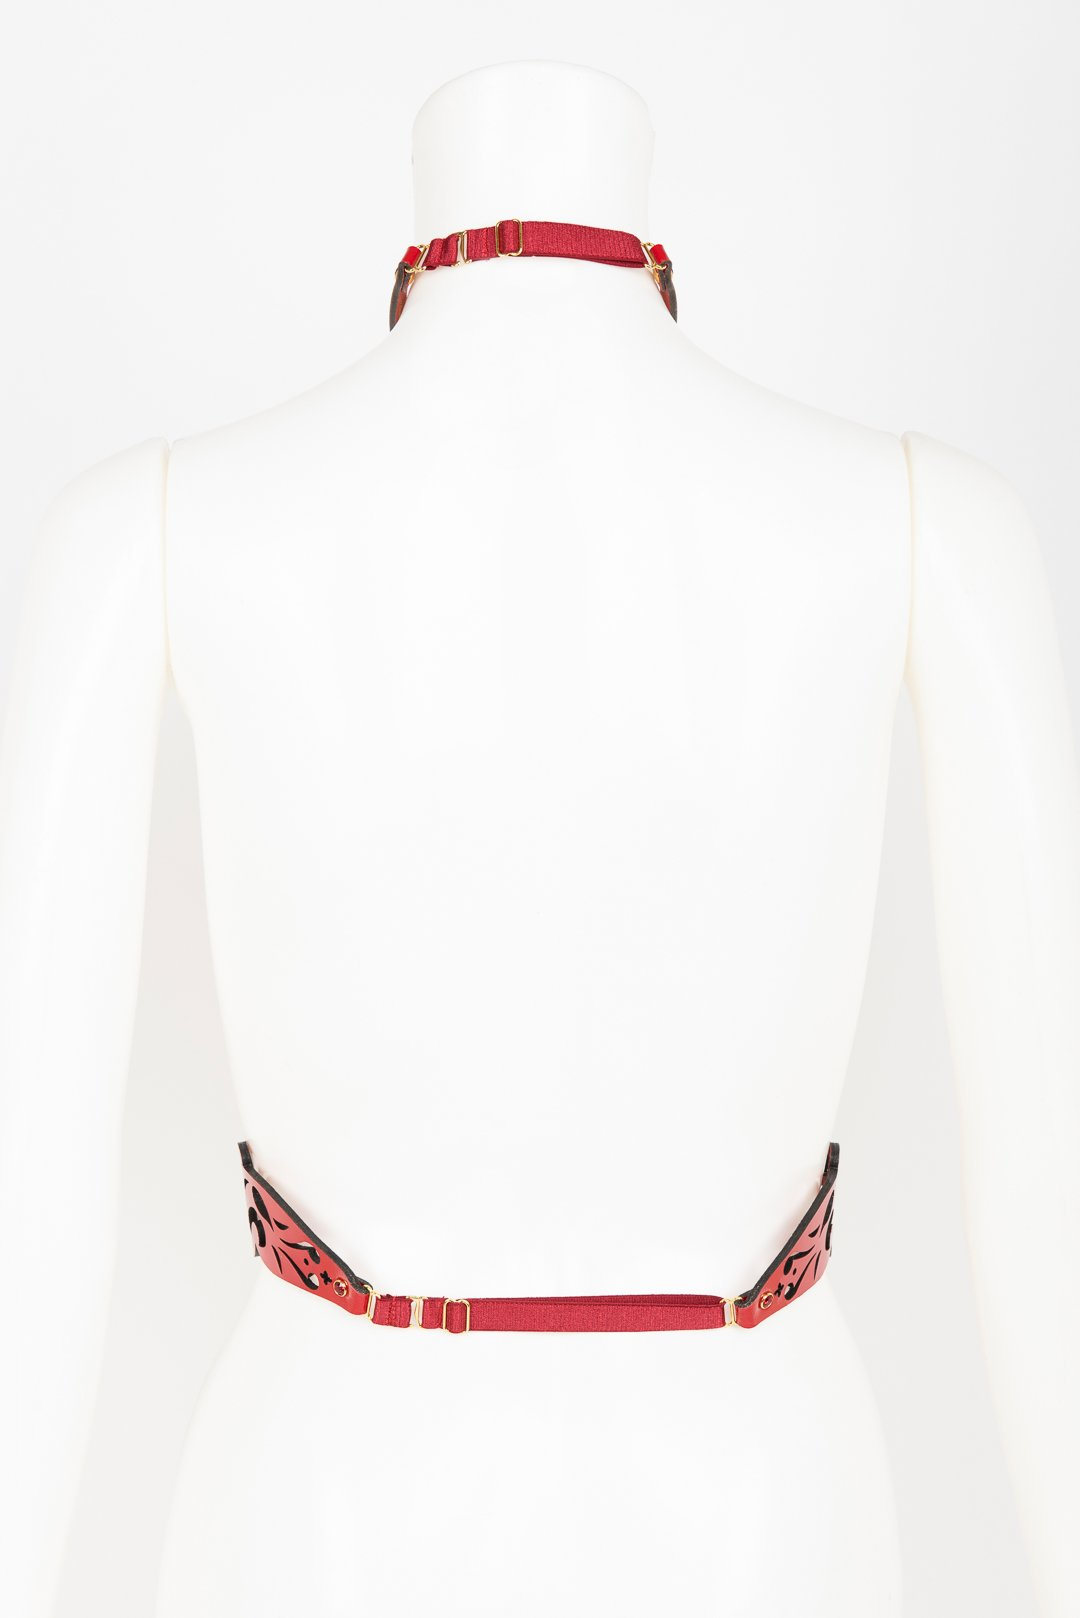 Patent Leather Harness with Crystal Rivets Buy Online at Fraulein Kink